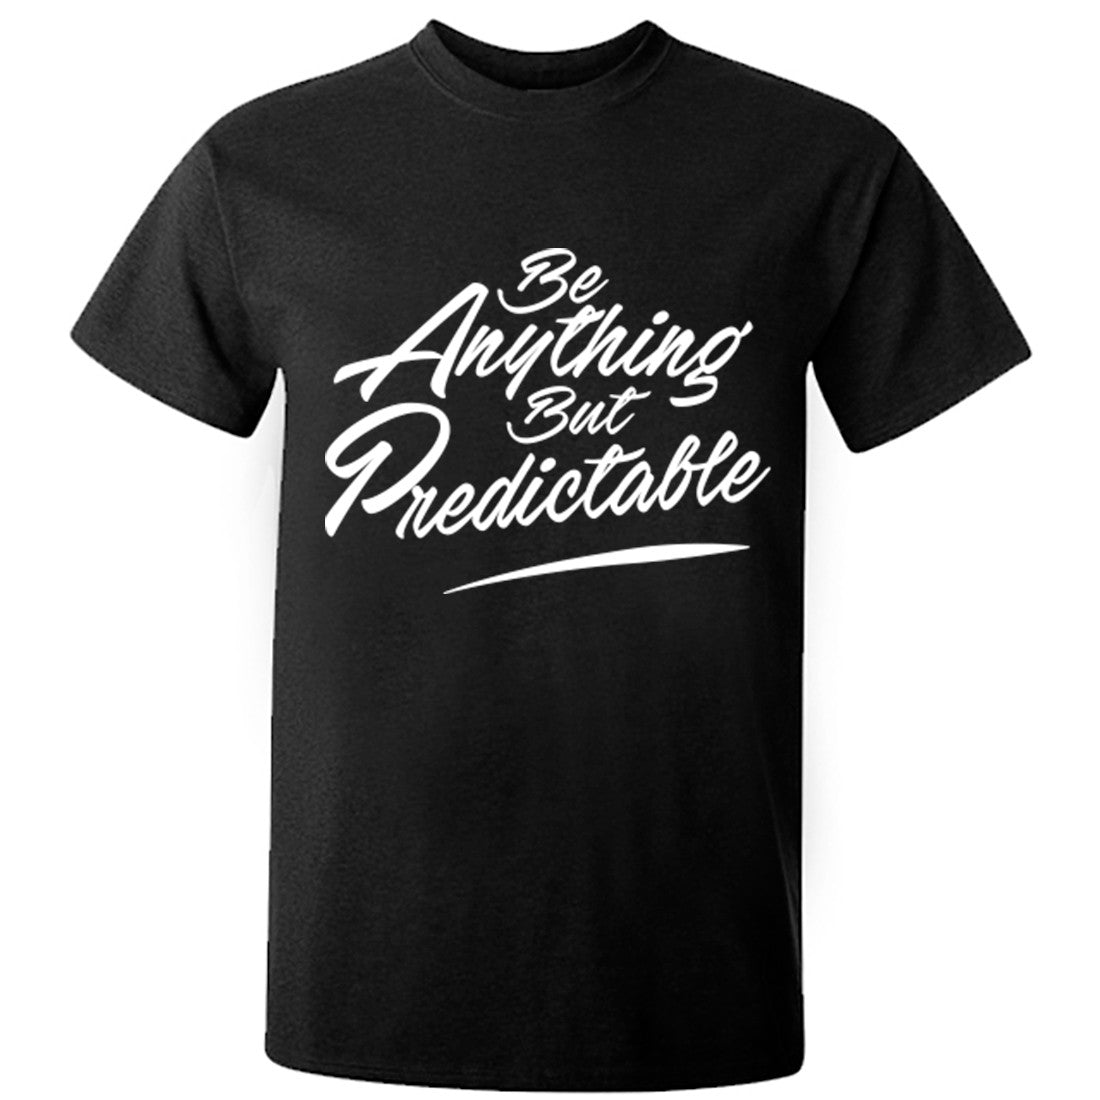 Be Anything But Predictable Unisex Fit T-Shirt K0389